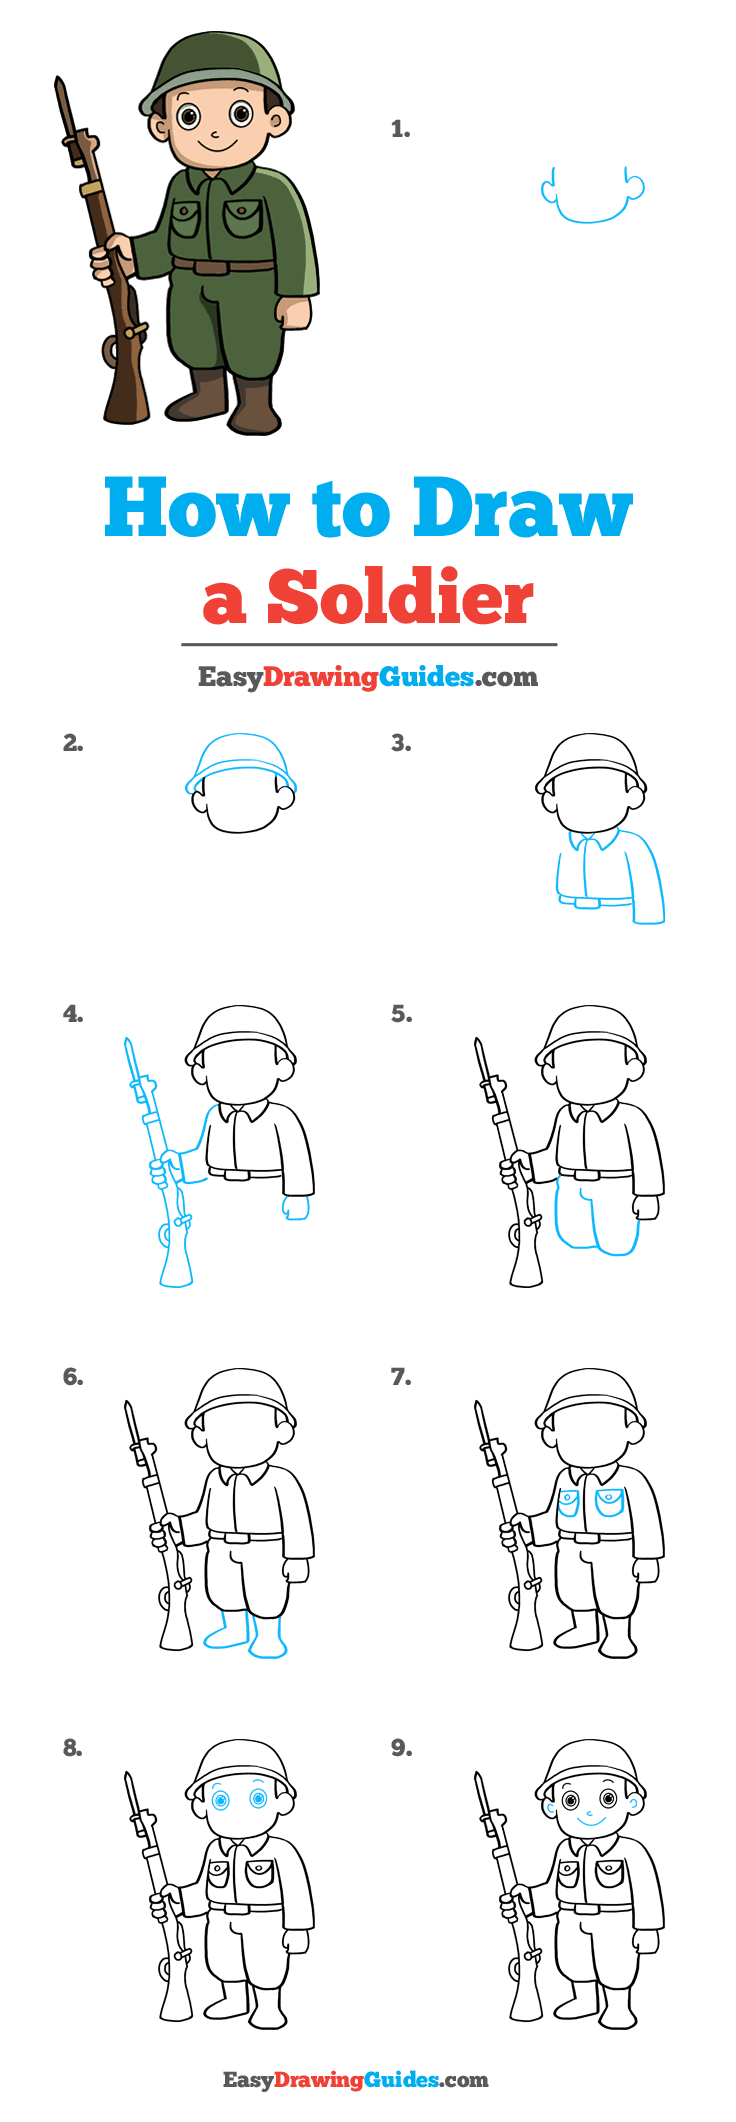 How to Draw a Soldier - Really Easy Drawing Tutorial